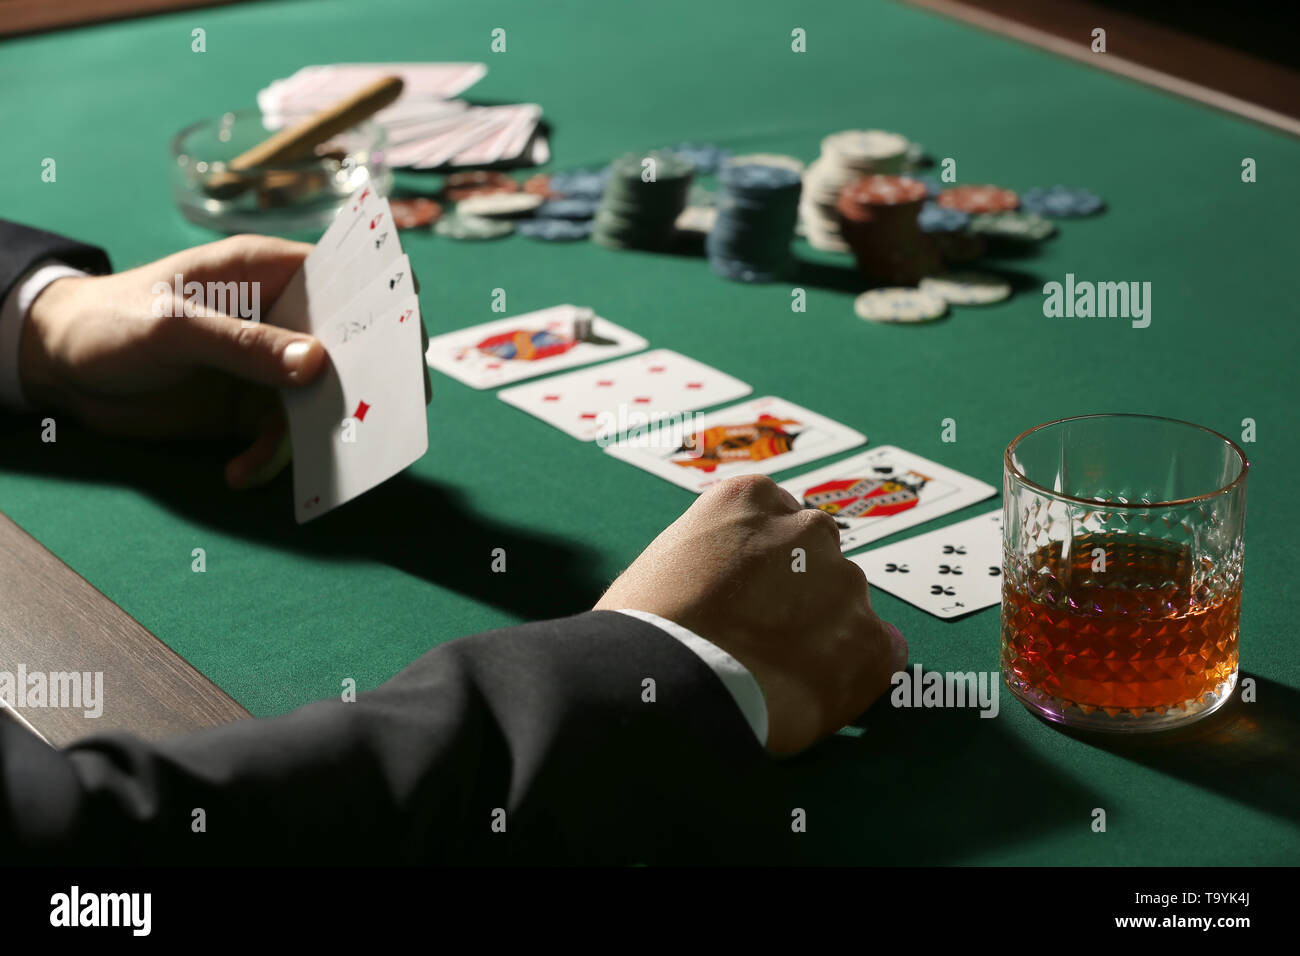 Male player at table in casino - Stock Image